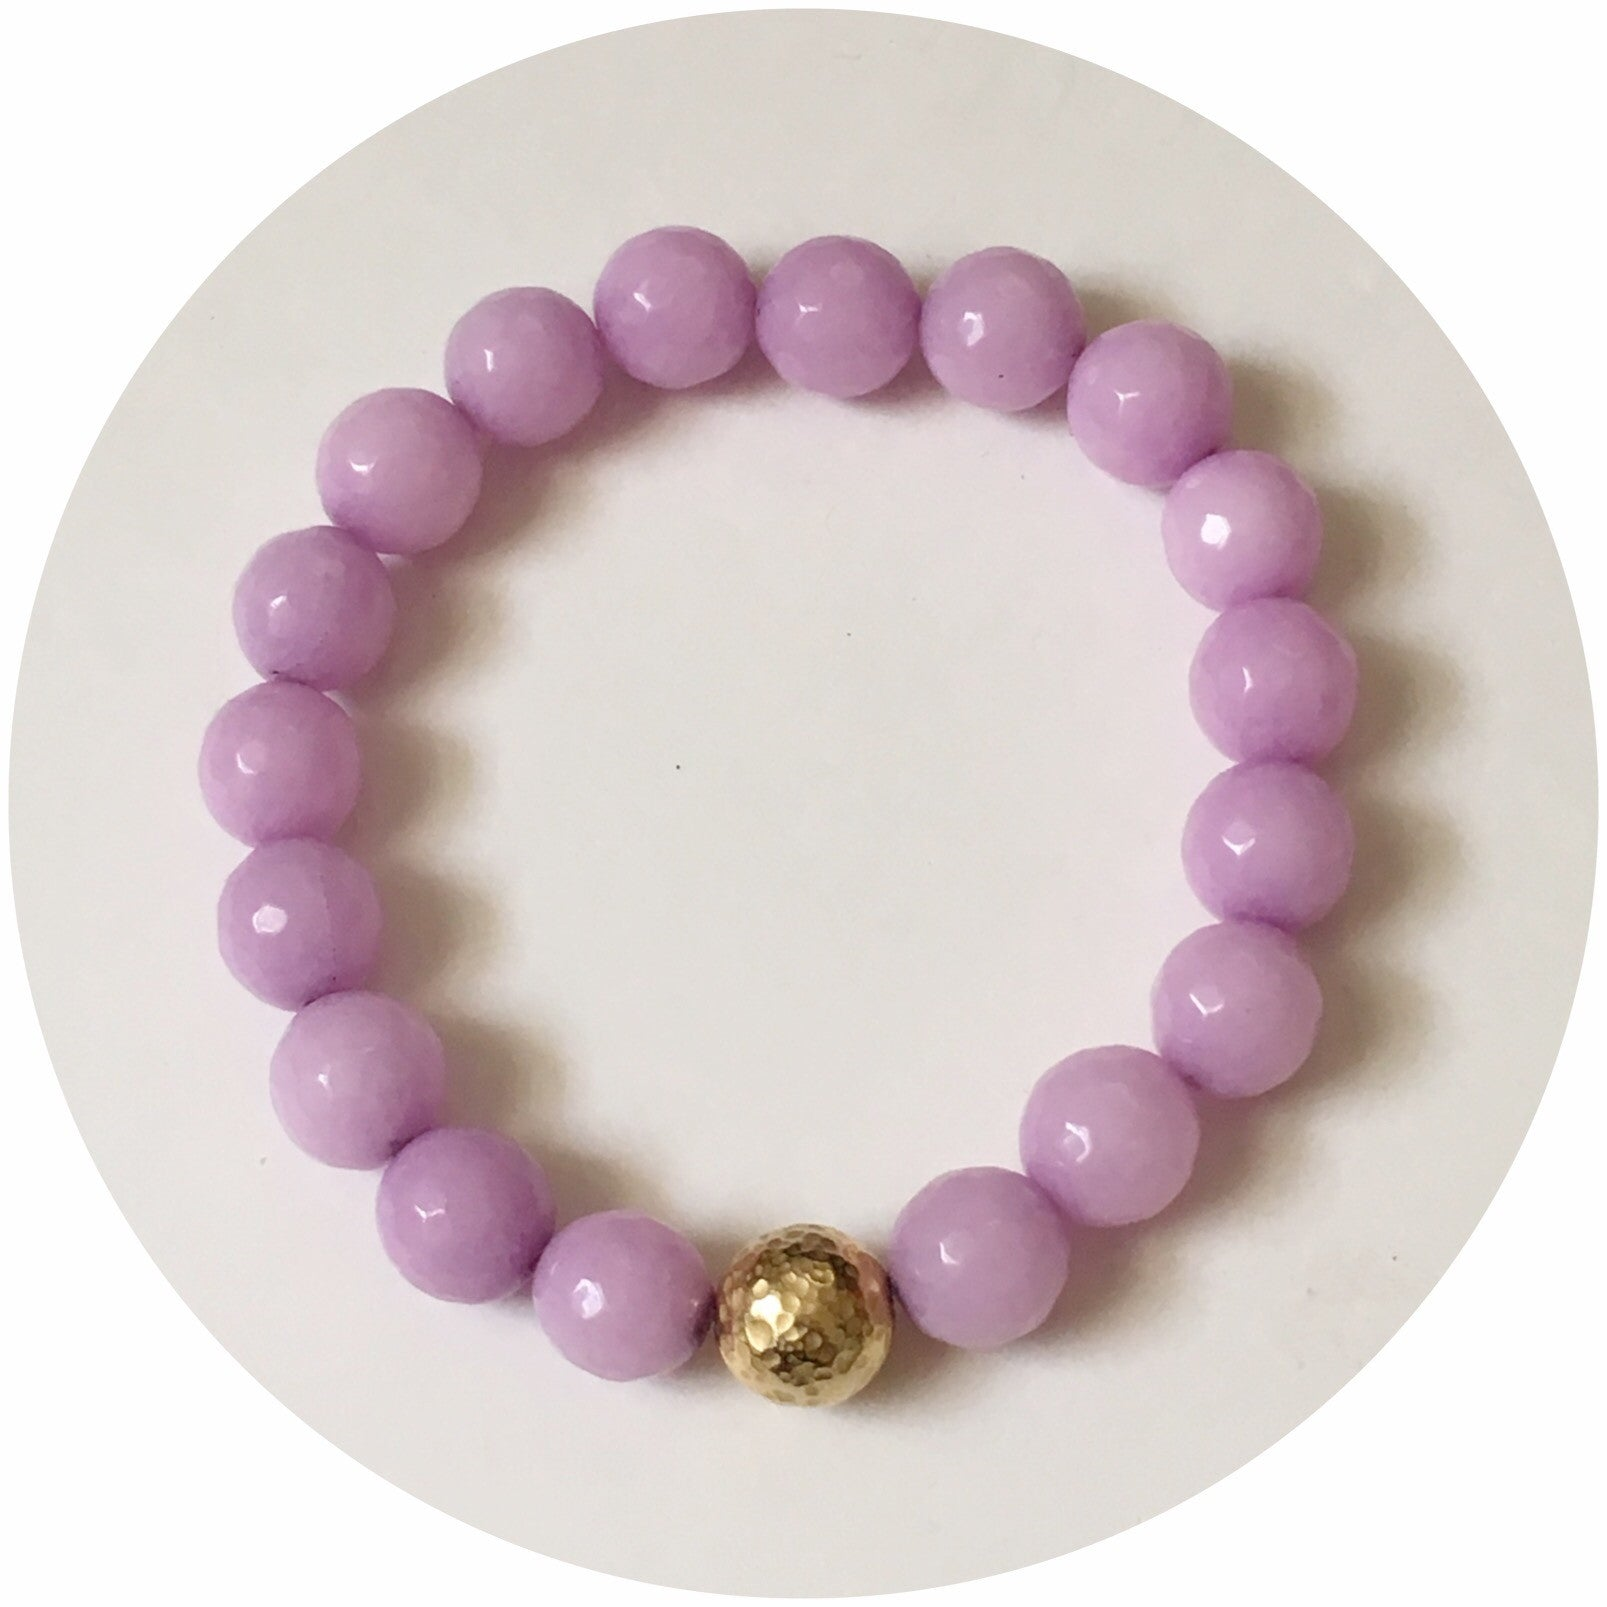 Lavender Jade with Hammered Gold Accent - Oriana Lamarca LLC